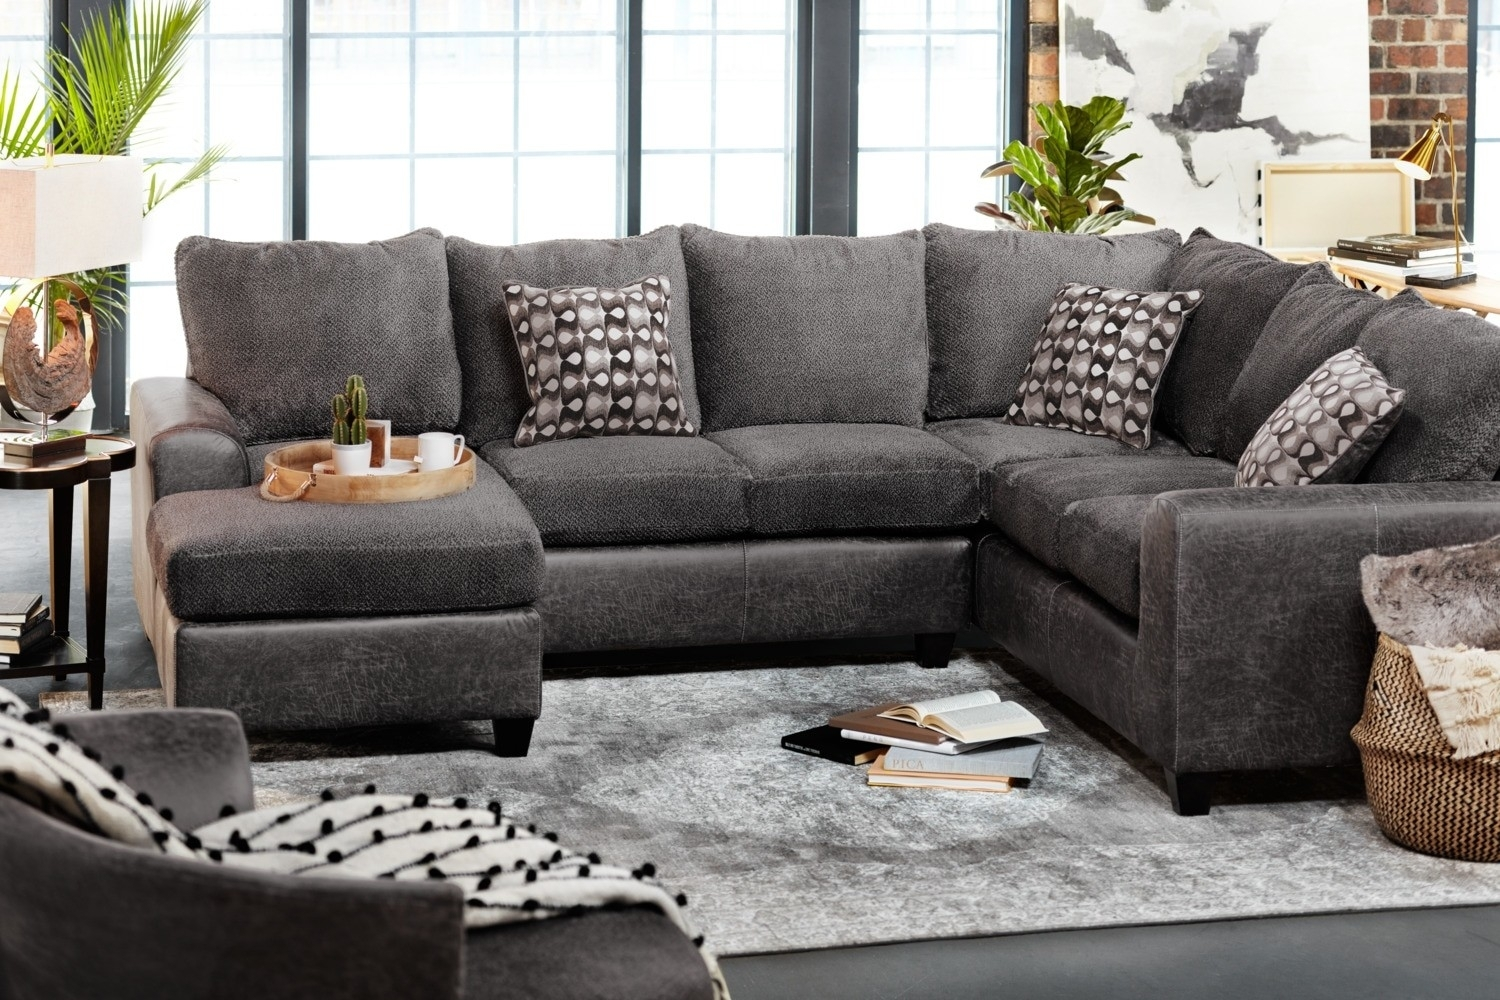 Featured Image of Malbry Point 3 Piece Sectionals With Raf Chaise